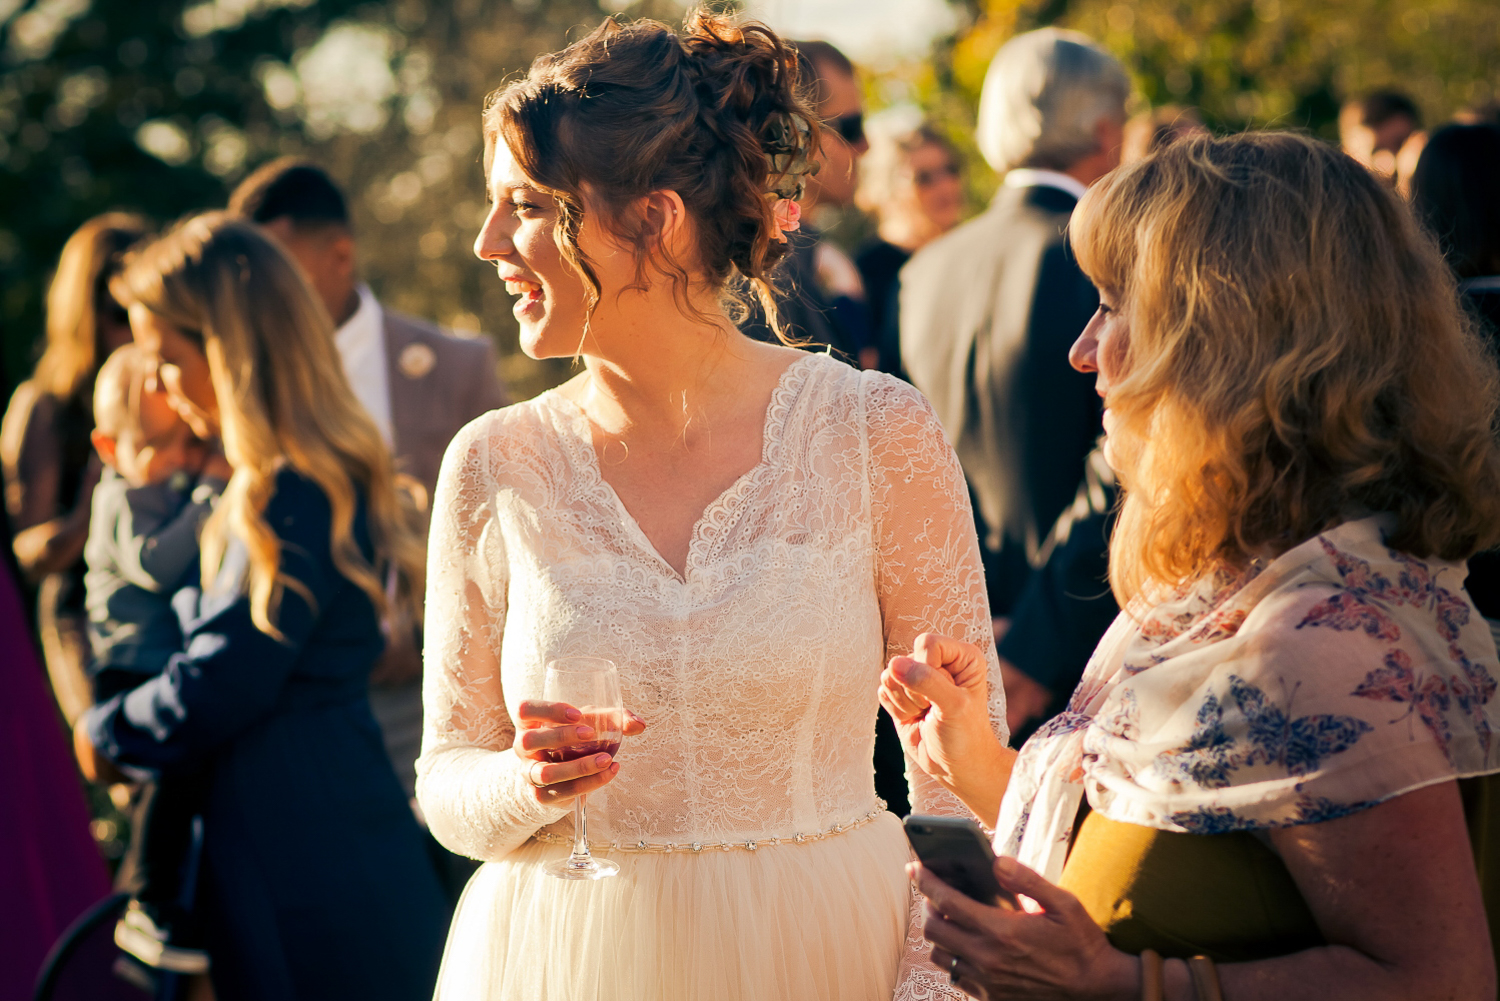 A beautiful bride relaxes after their wedding ceremony